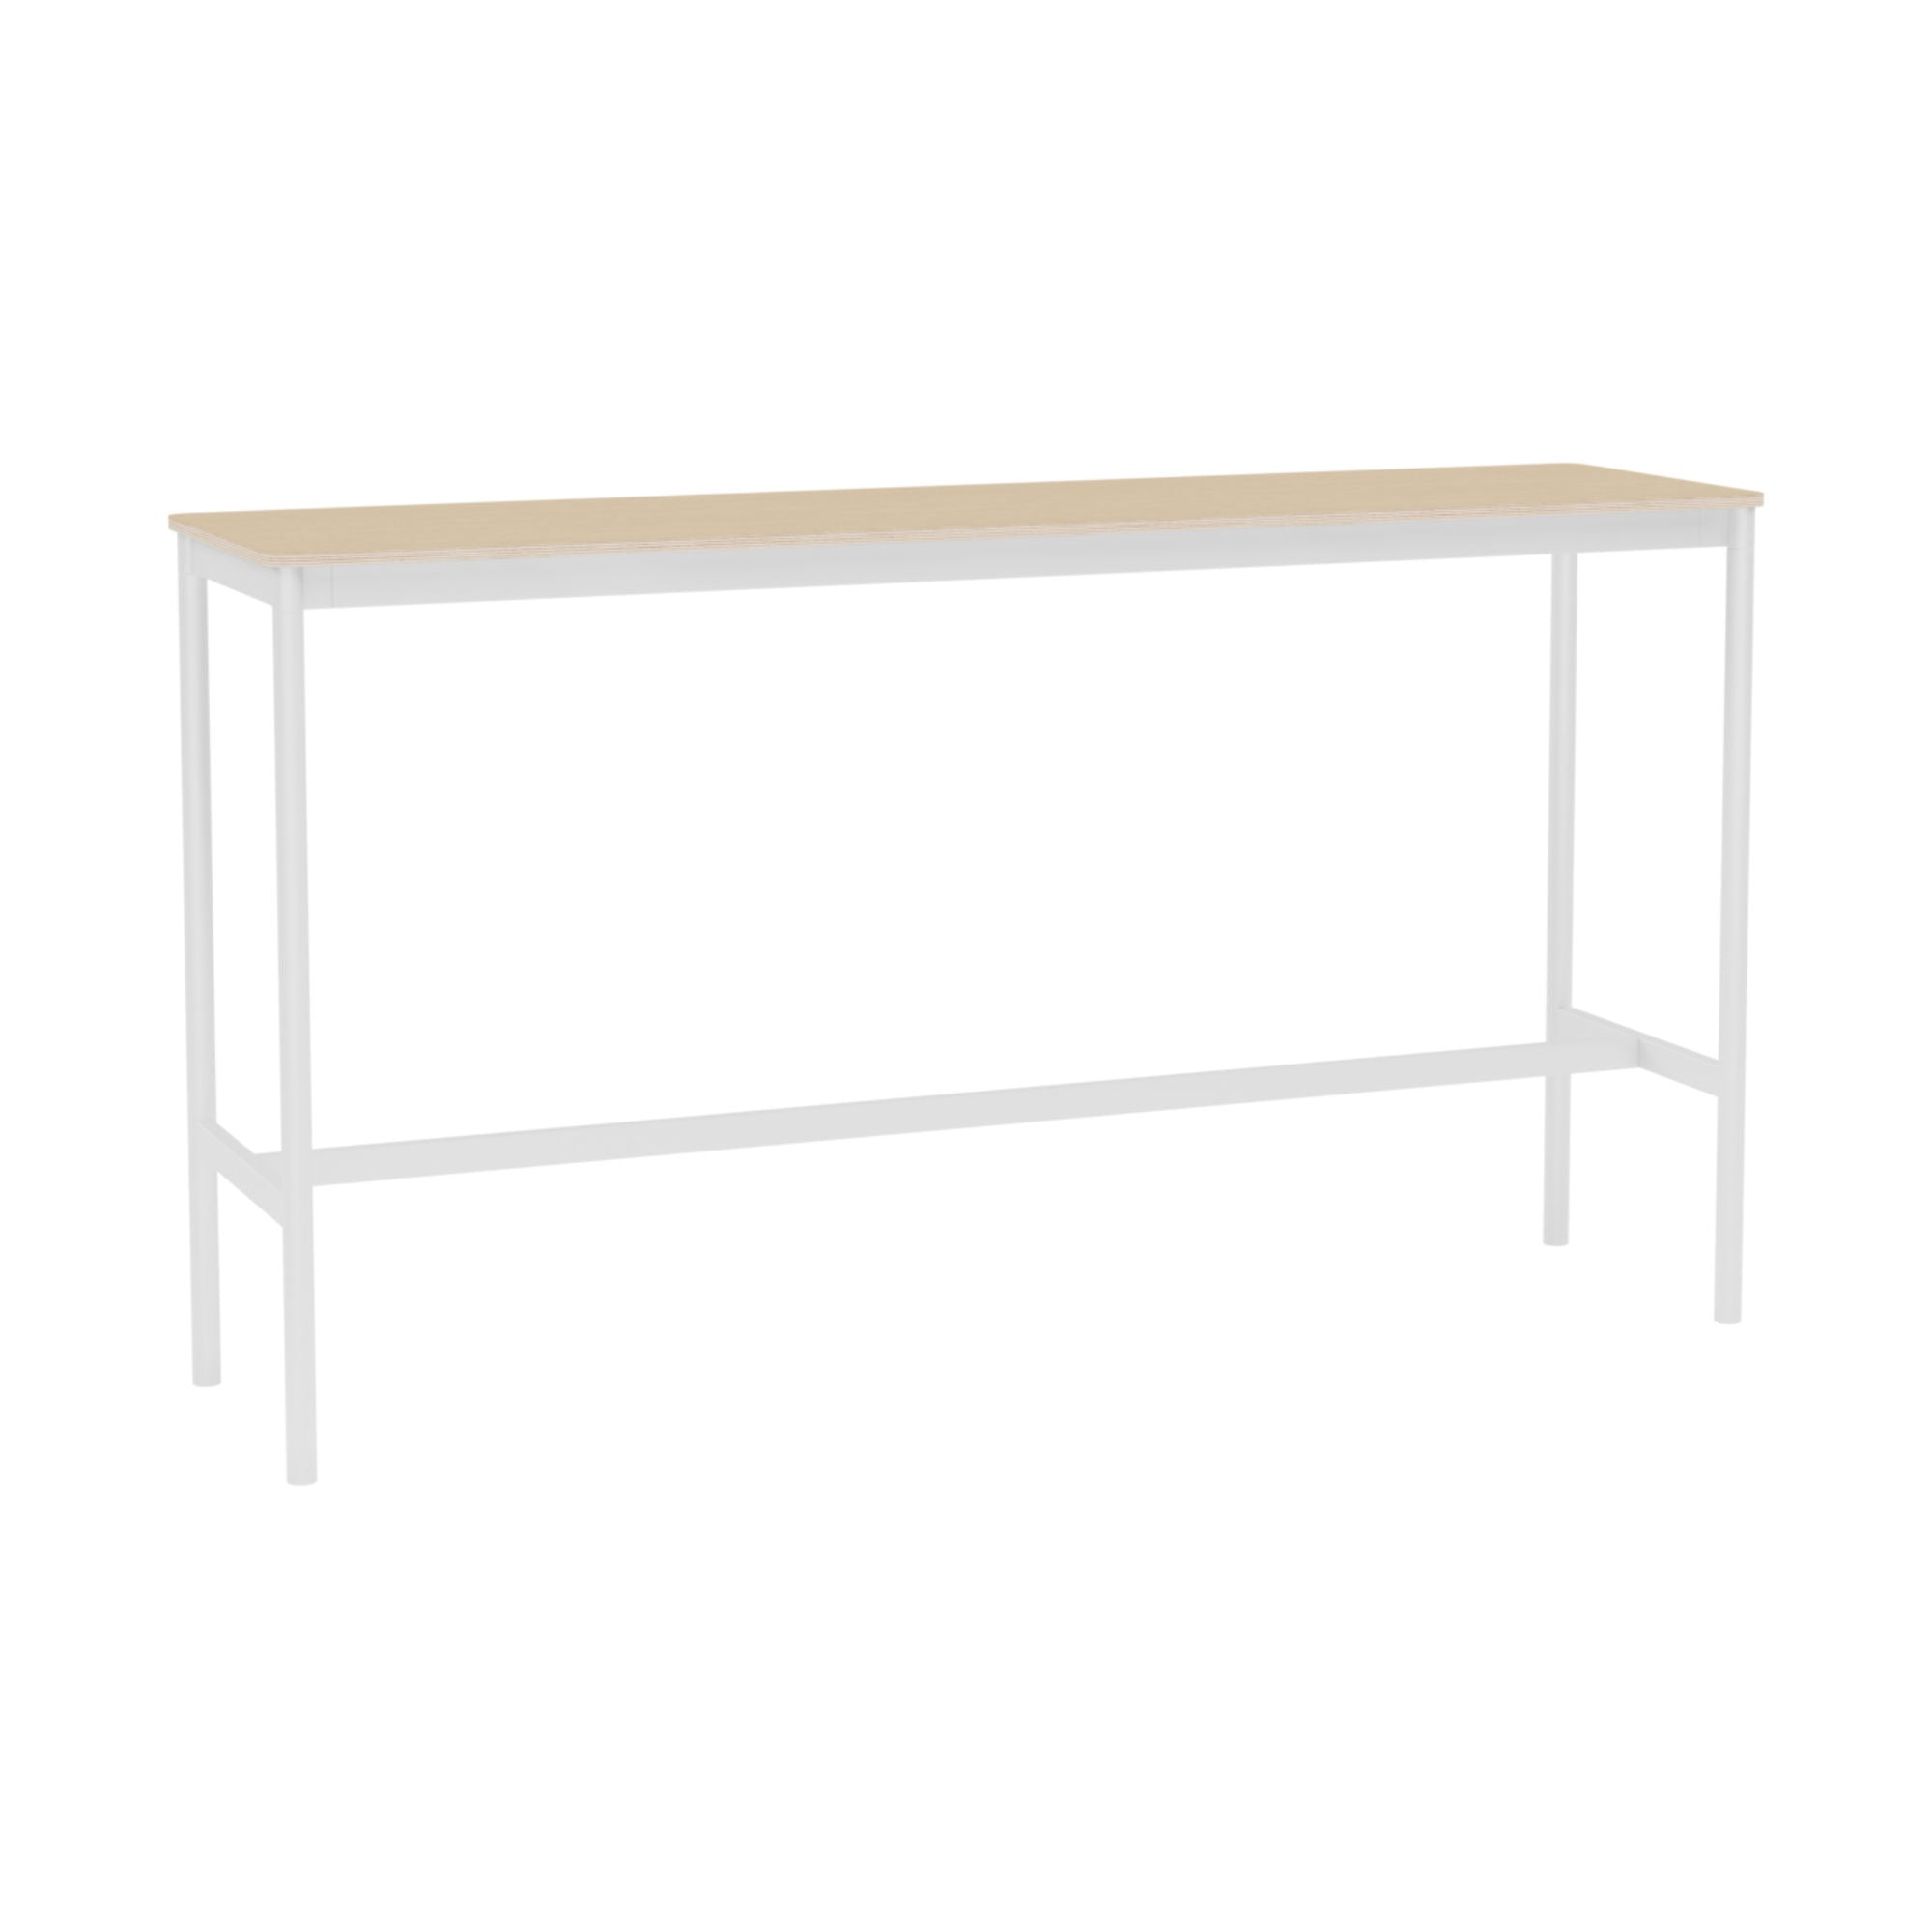 Muuto Base High Table 190x50 h:105cm , Lacquered Oak Veneer/Plywood/White